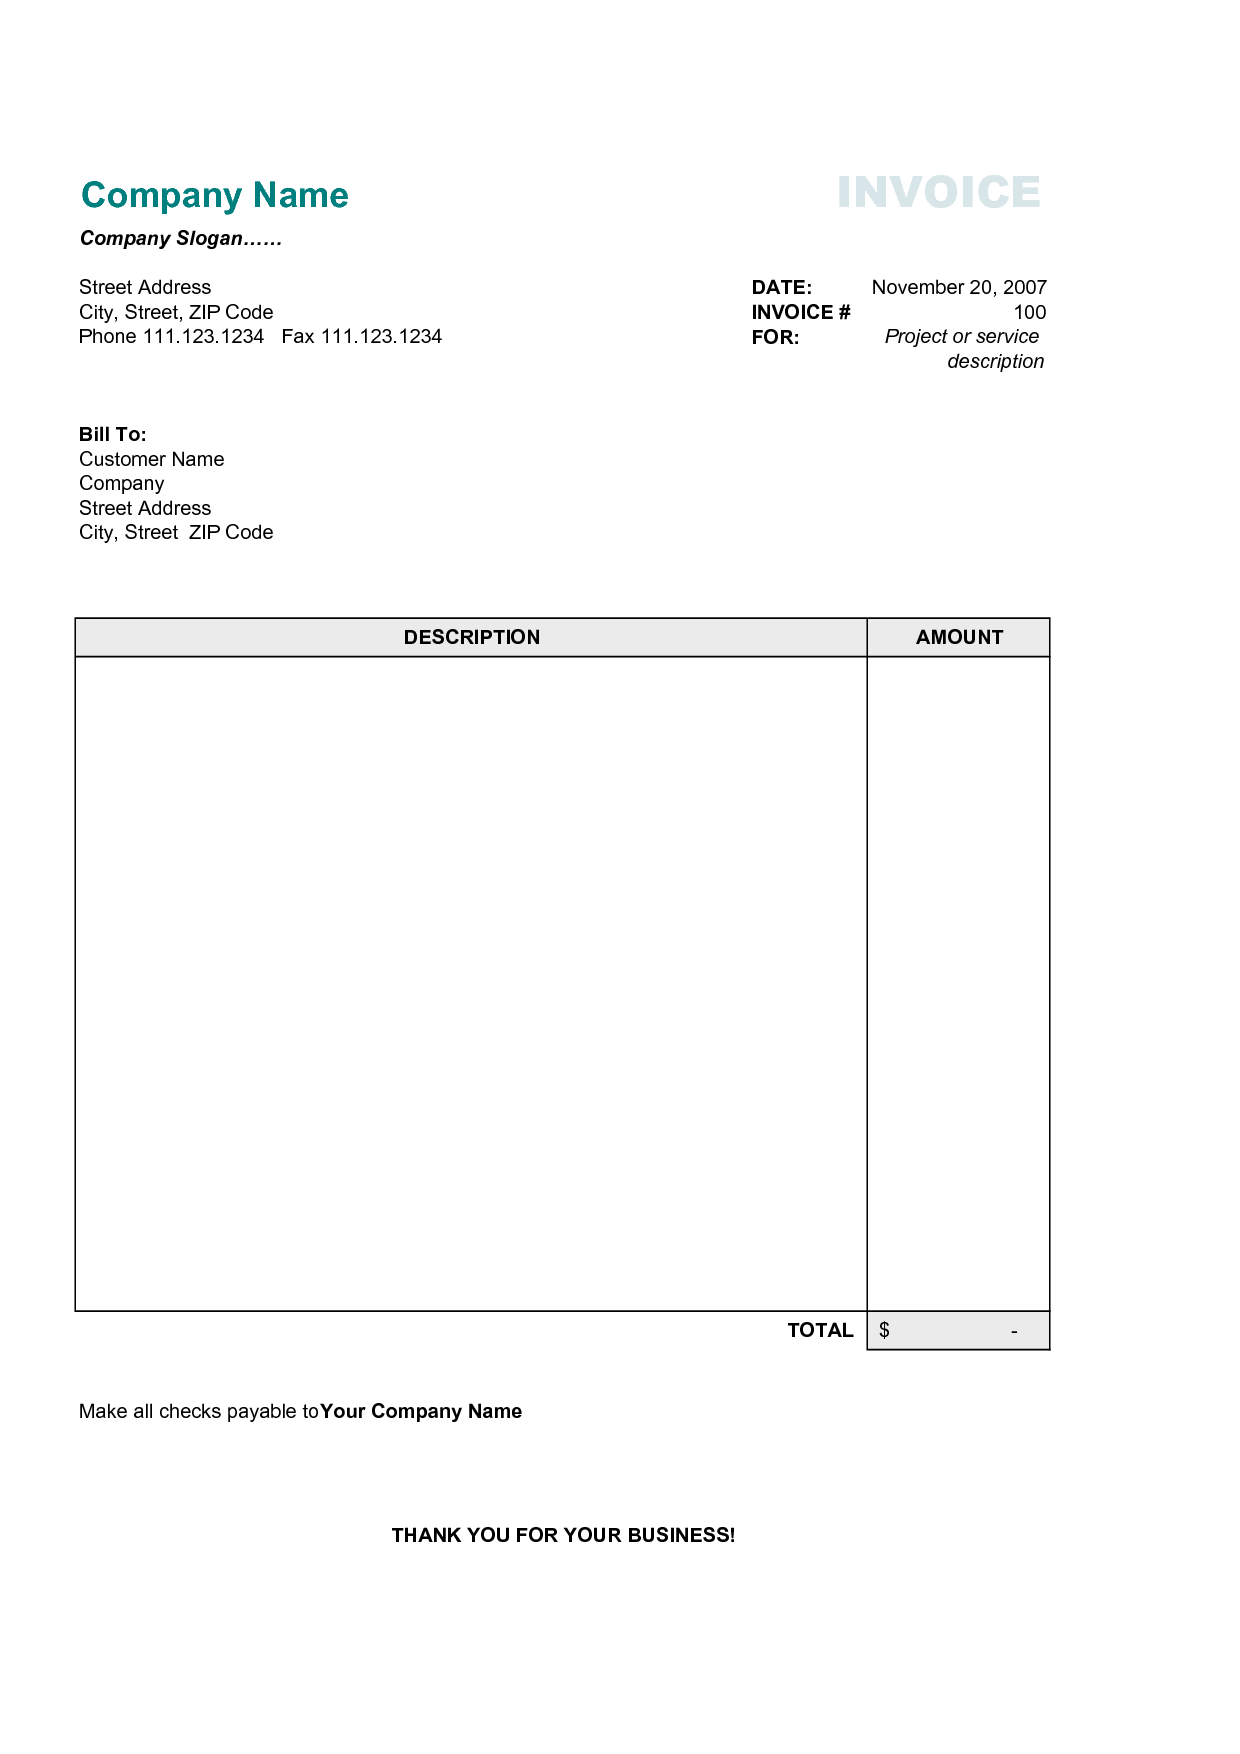 basic invoice template microsoft word business case templates free, Invoice templates